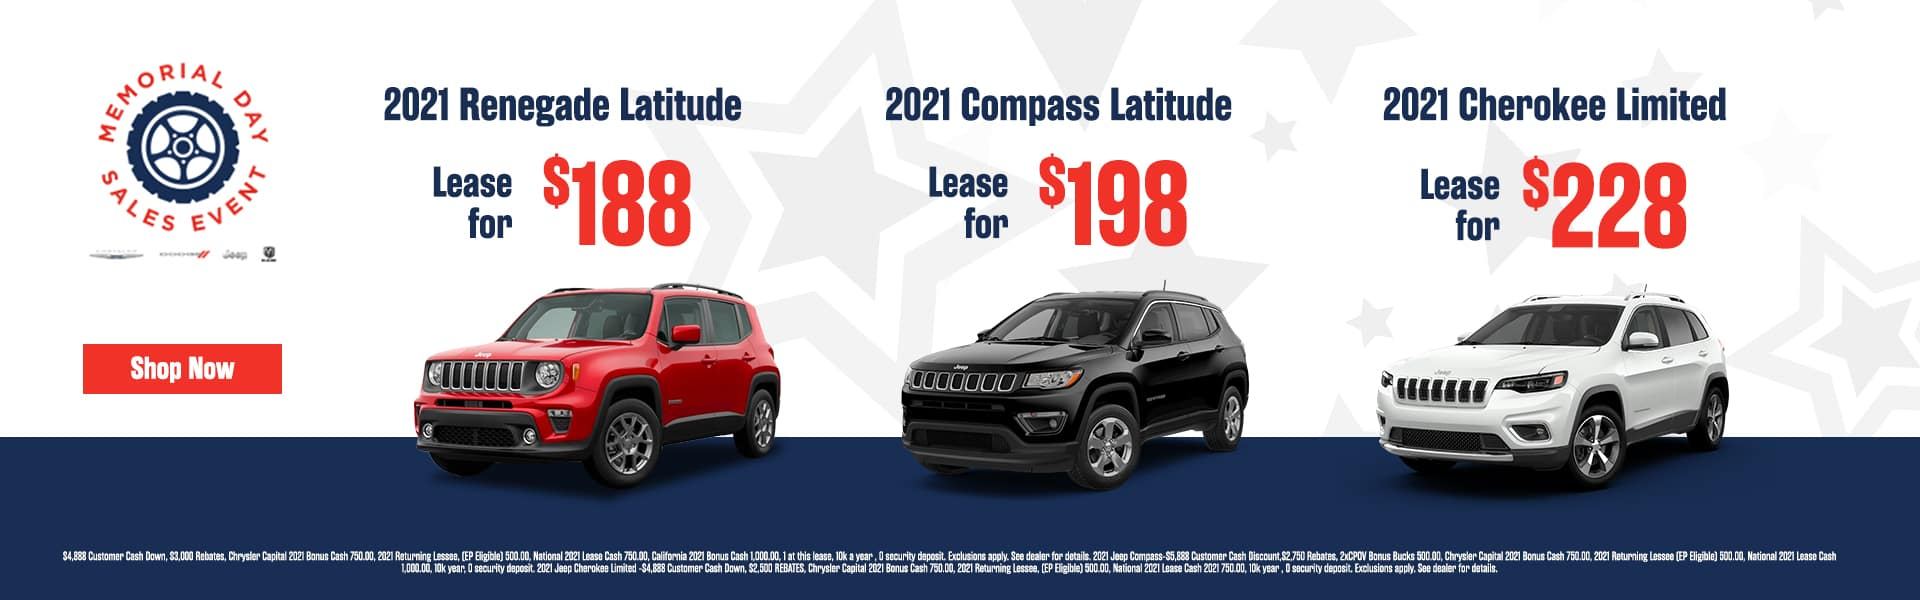 MEMORIAL DAY SALES EVENT Subtext: - 2021 Renegade Latitude, 2021 Compass Latitude - 2021 Cherokee Limited LEASE NOW $188 | $198 | $228